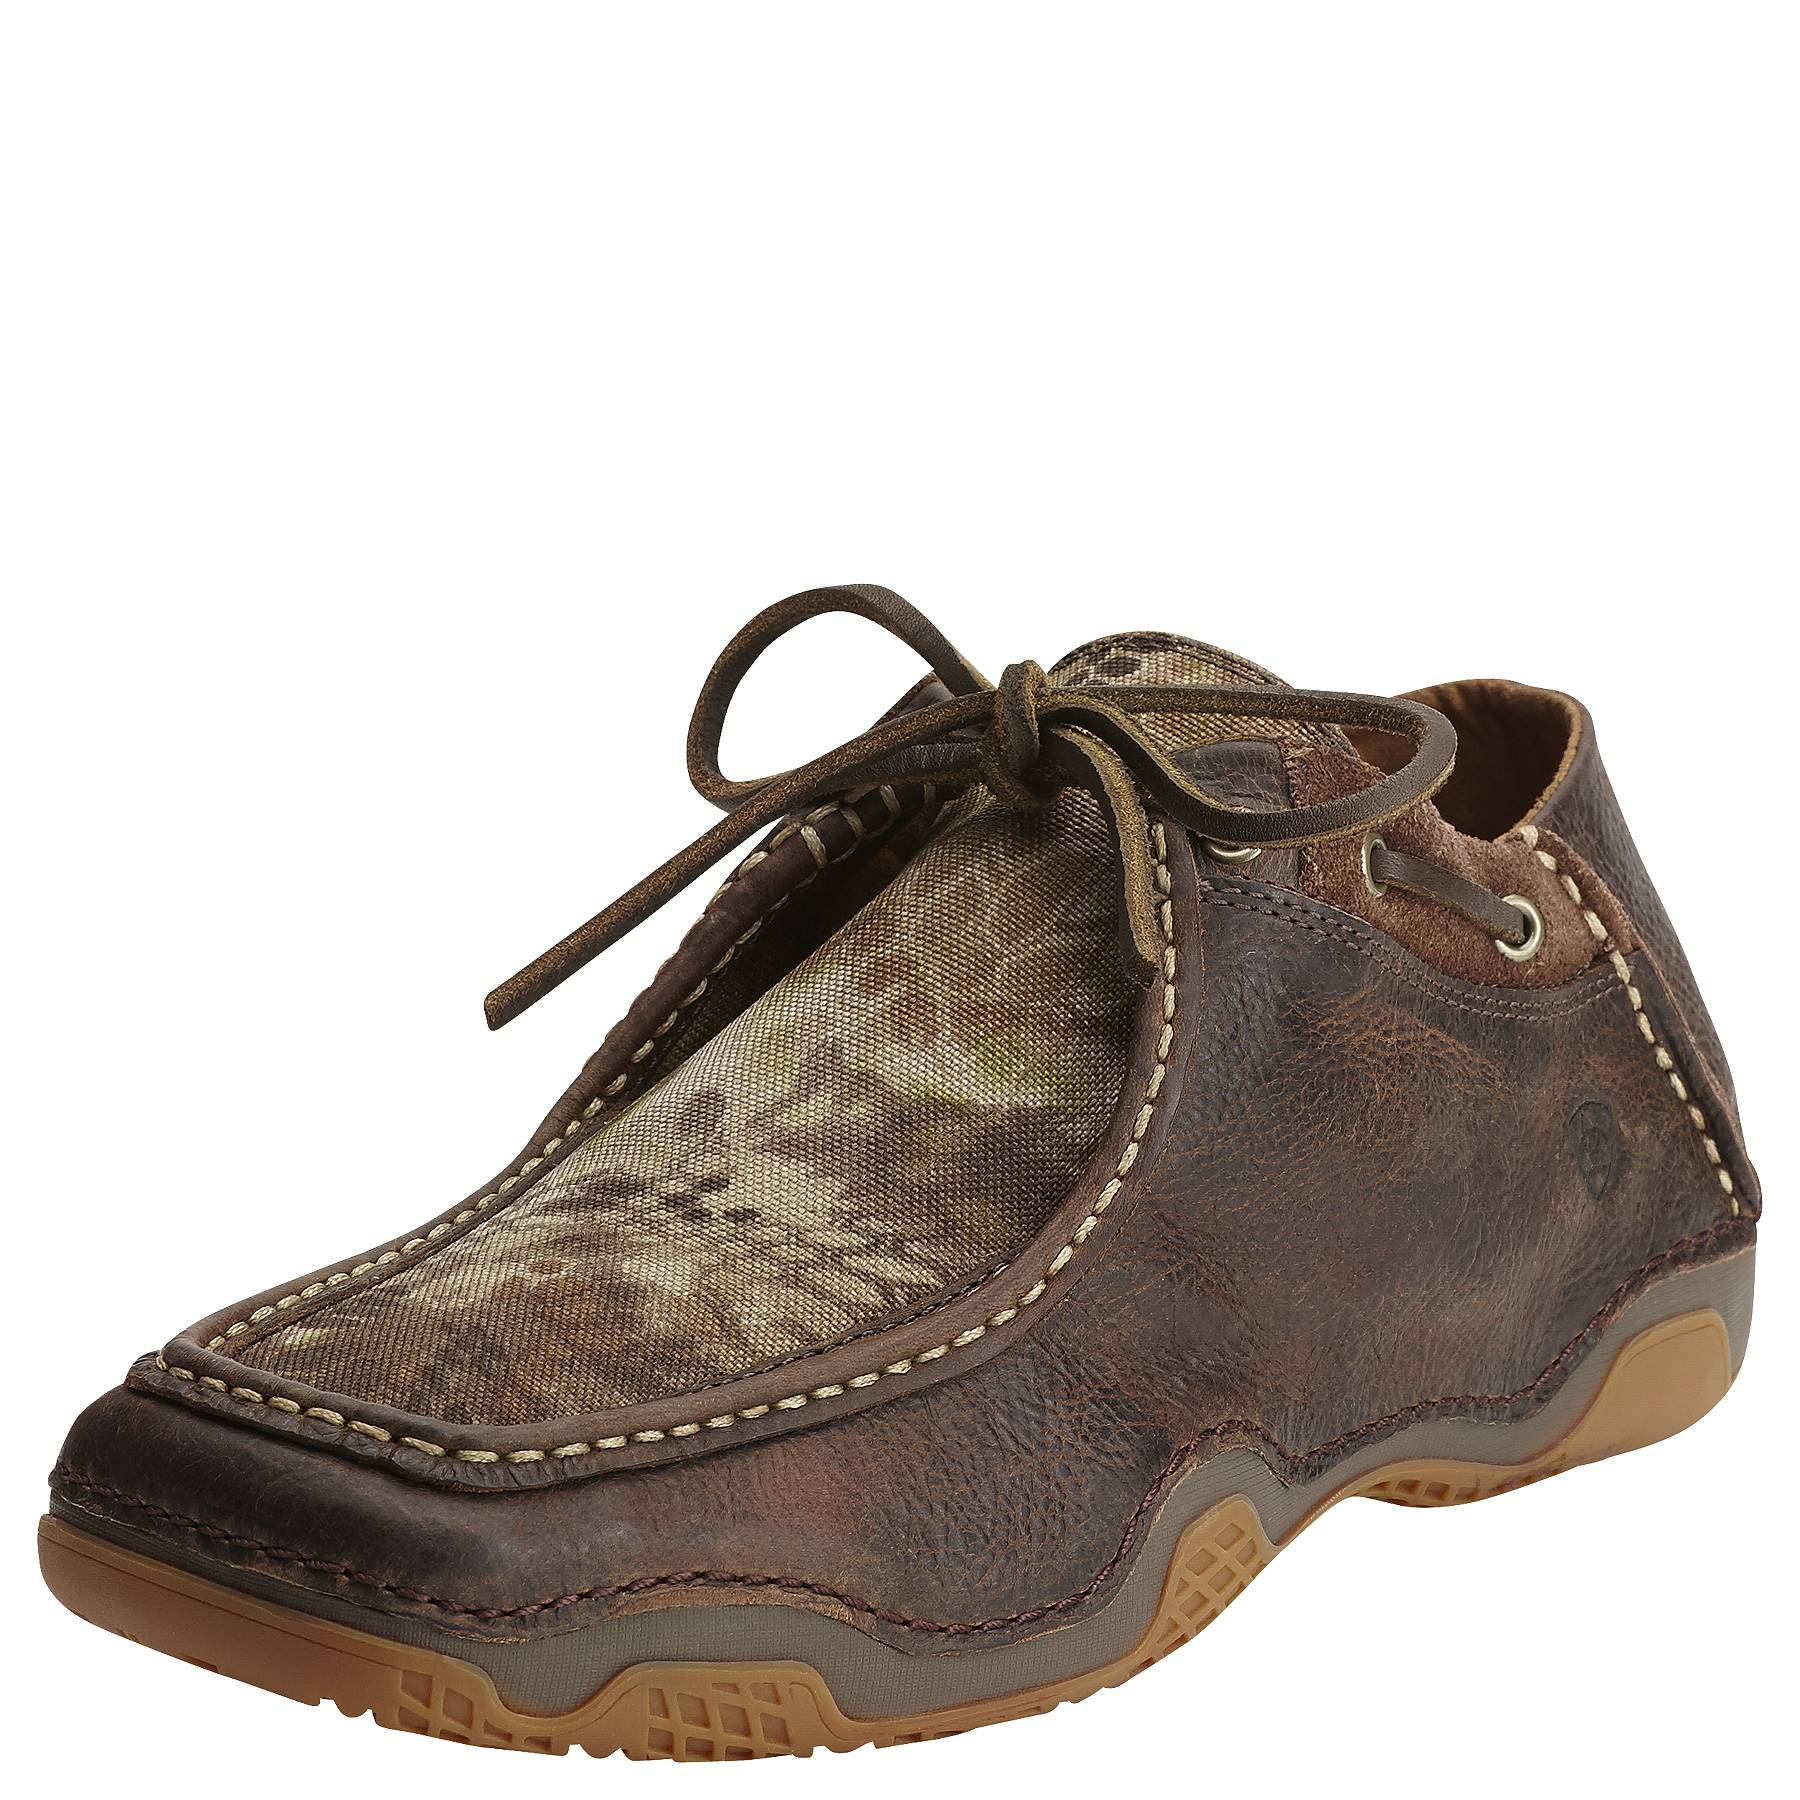 Ariat Men's Rock Springs - Wicker